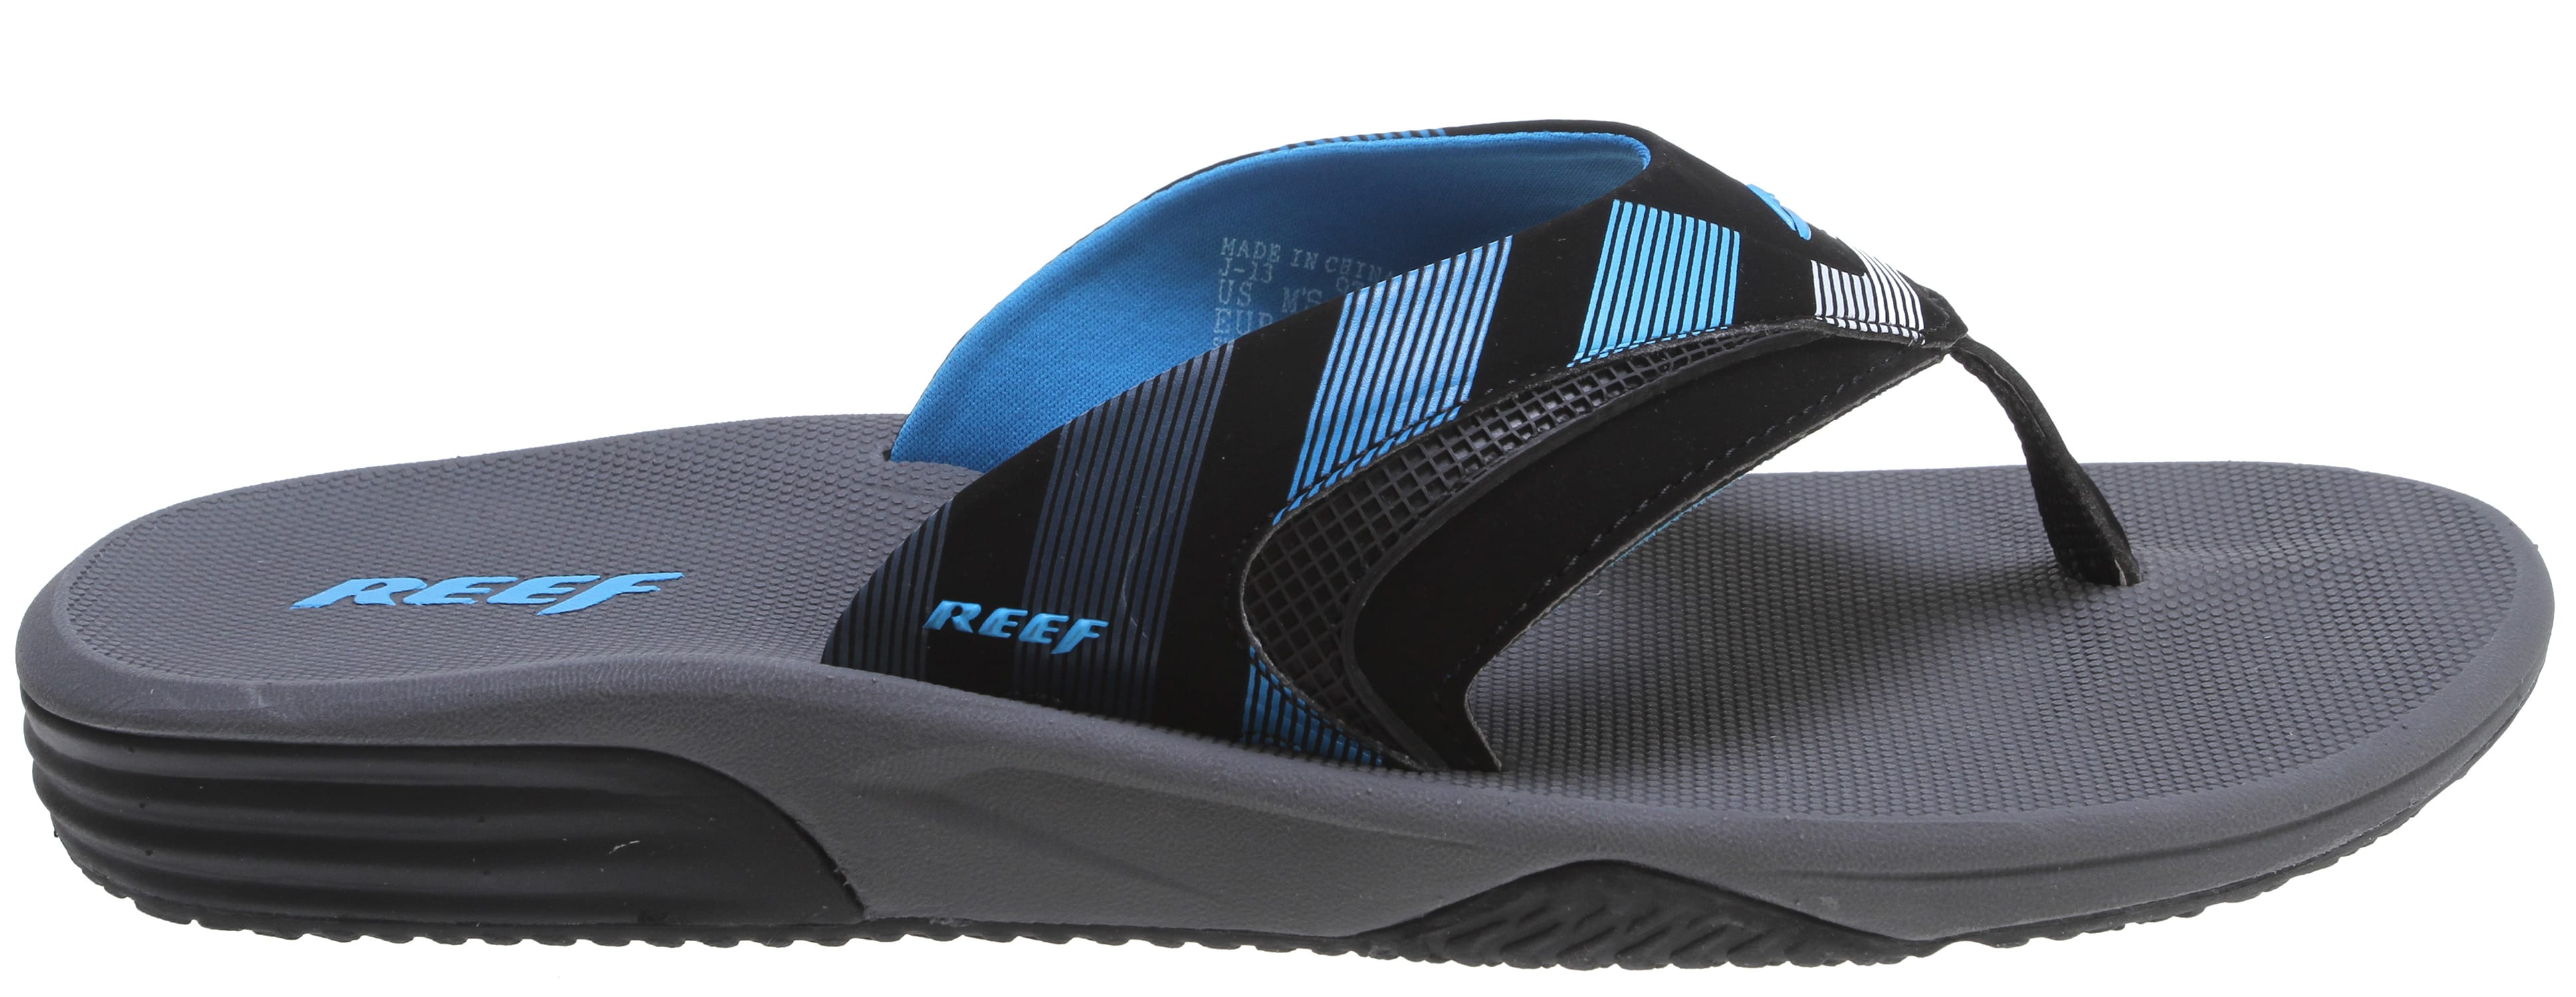 e45505bfc90 Reef Phantom Player Prints Sandals - thumbnail 1